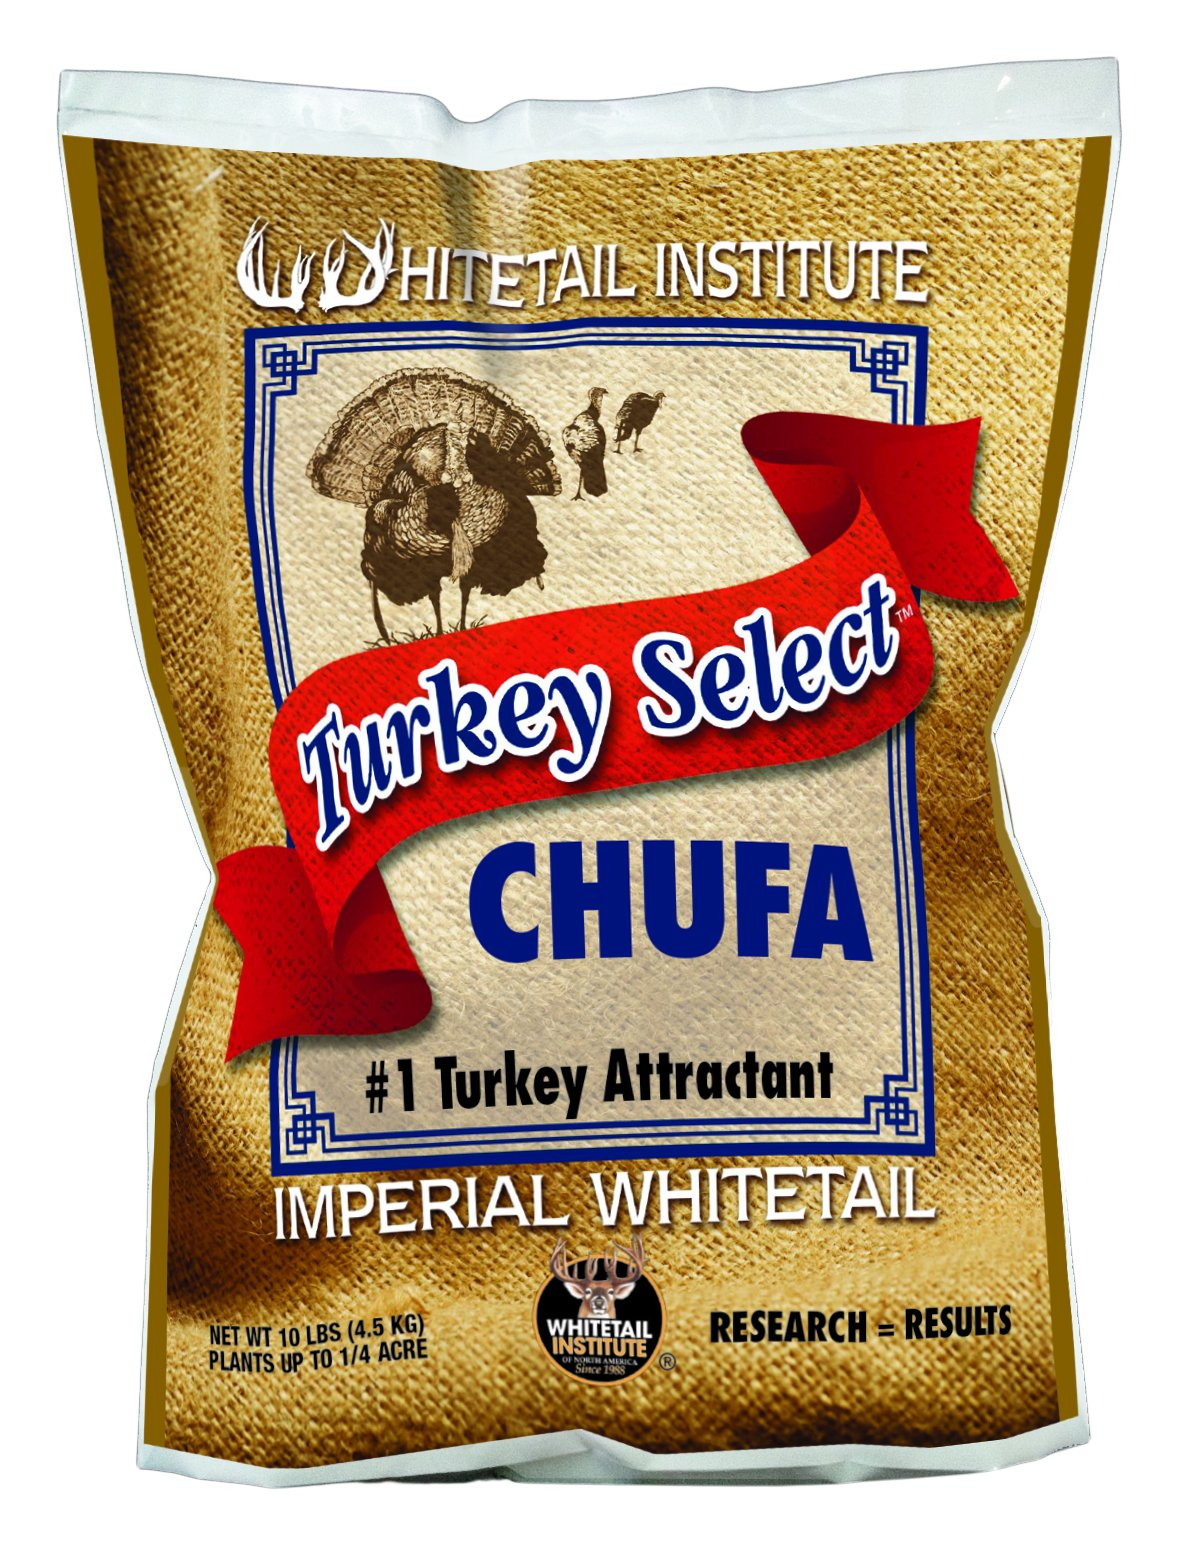 Whitetail Institute Men's Turkey Select Chufa Food Plot Seed, 10 lb by Whitetail Institute (Image #1)